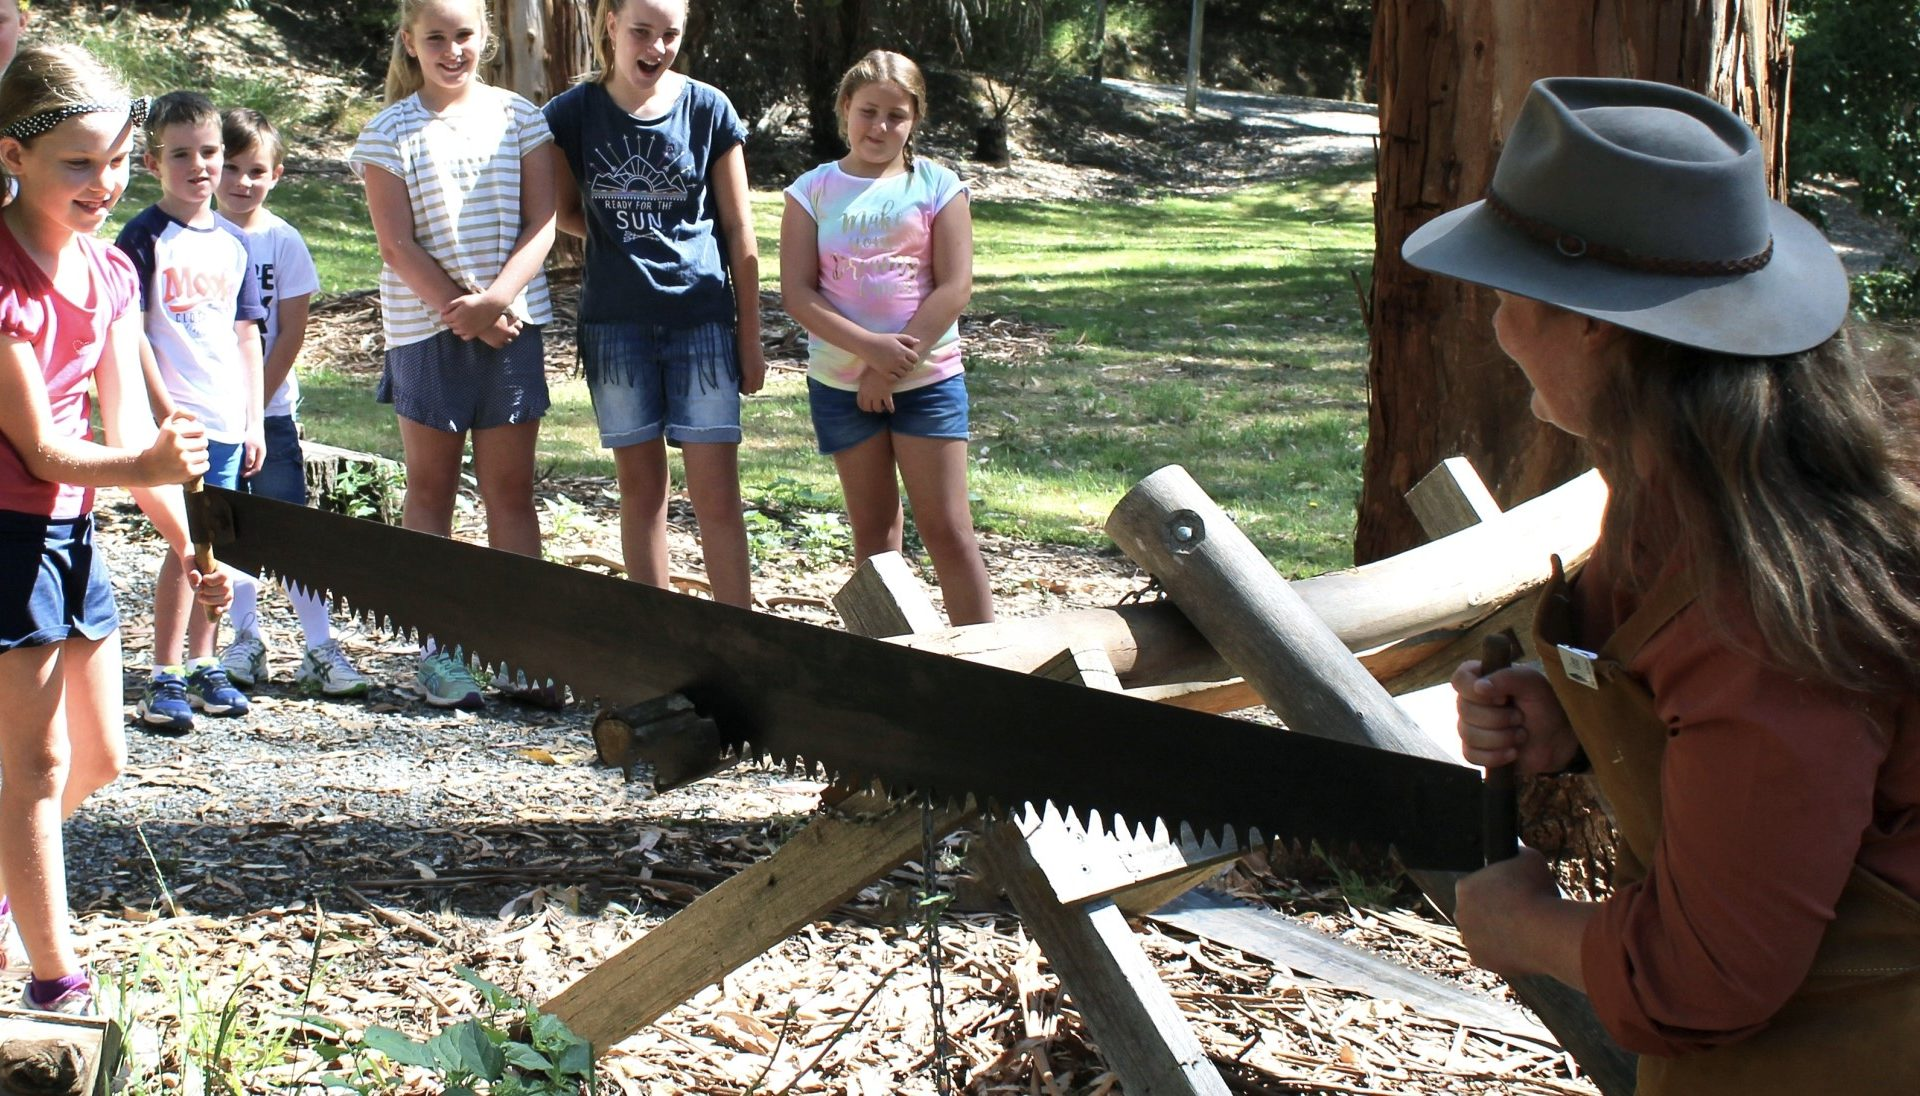 Image of a woman demonstrating an old saw while a group of young children watch